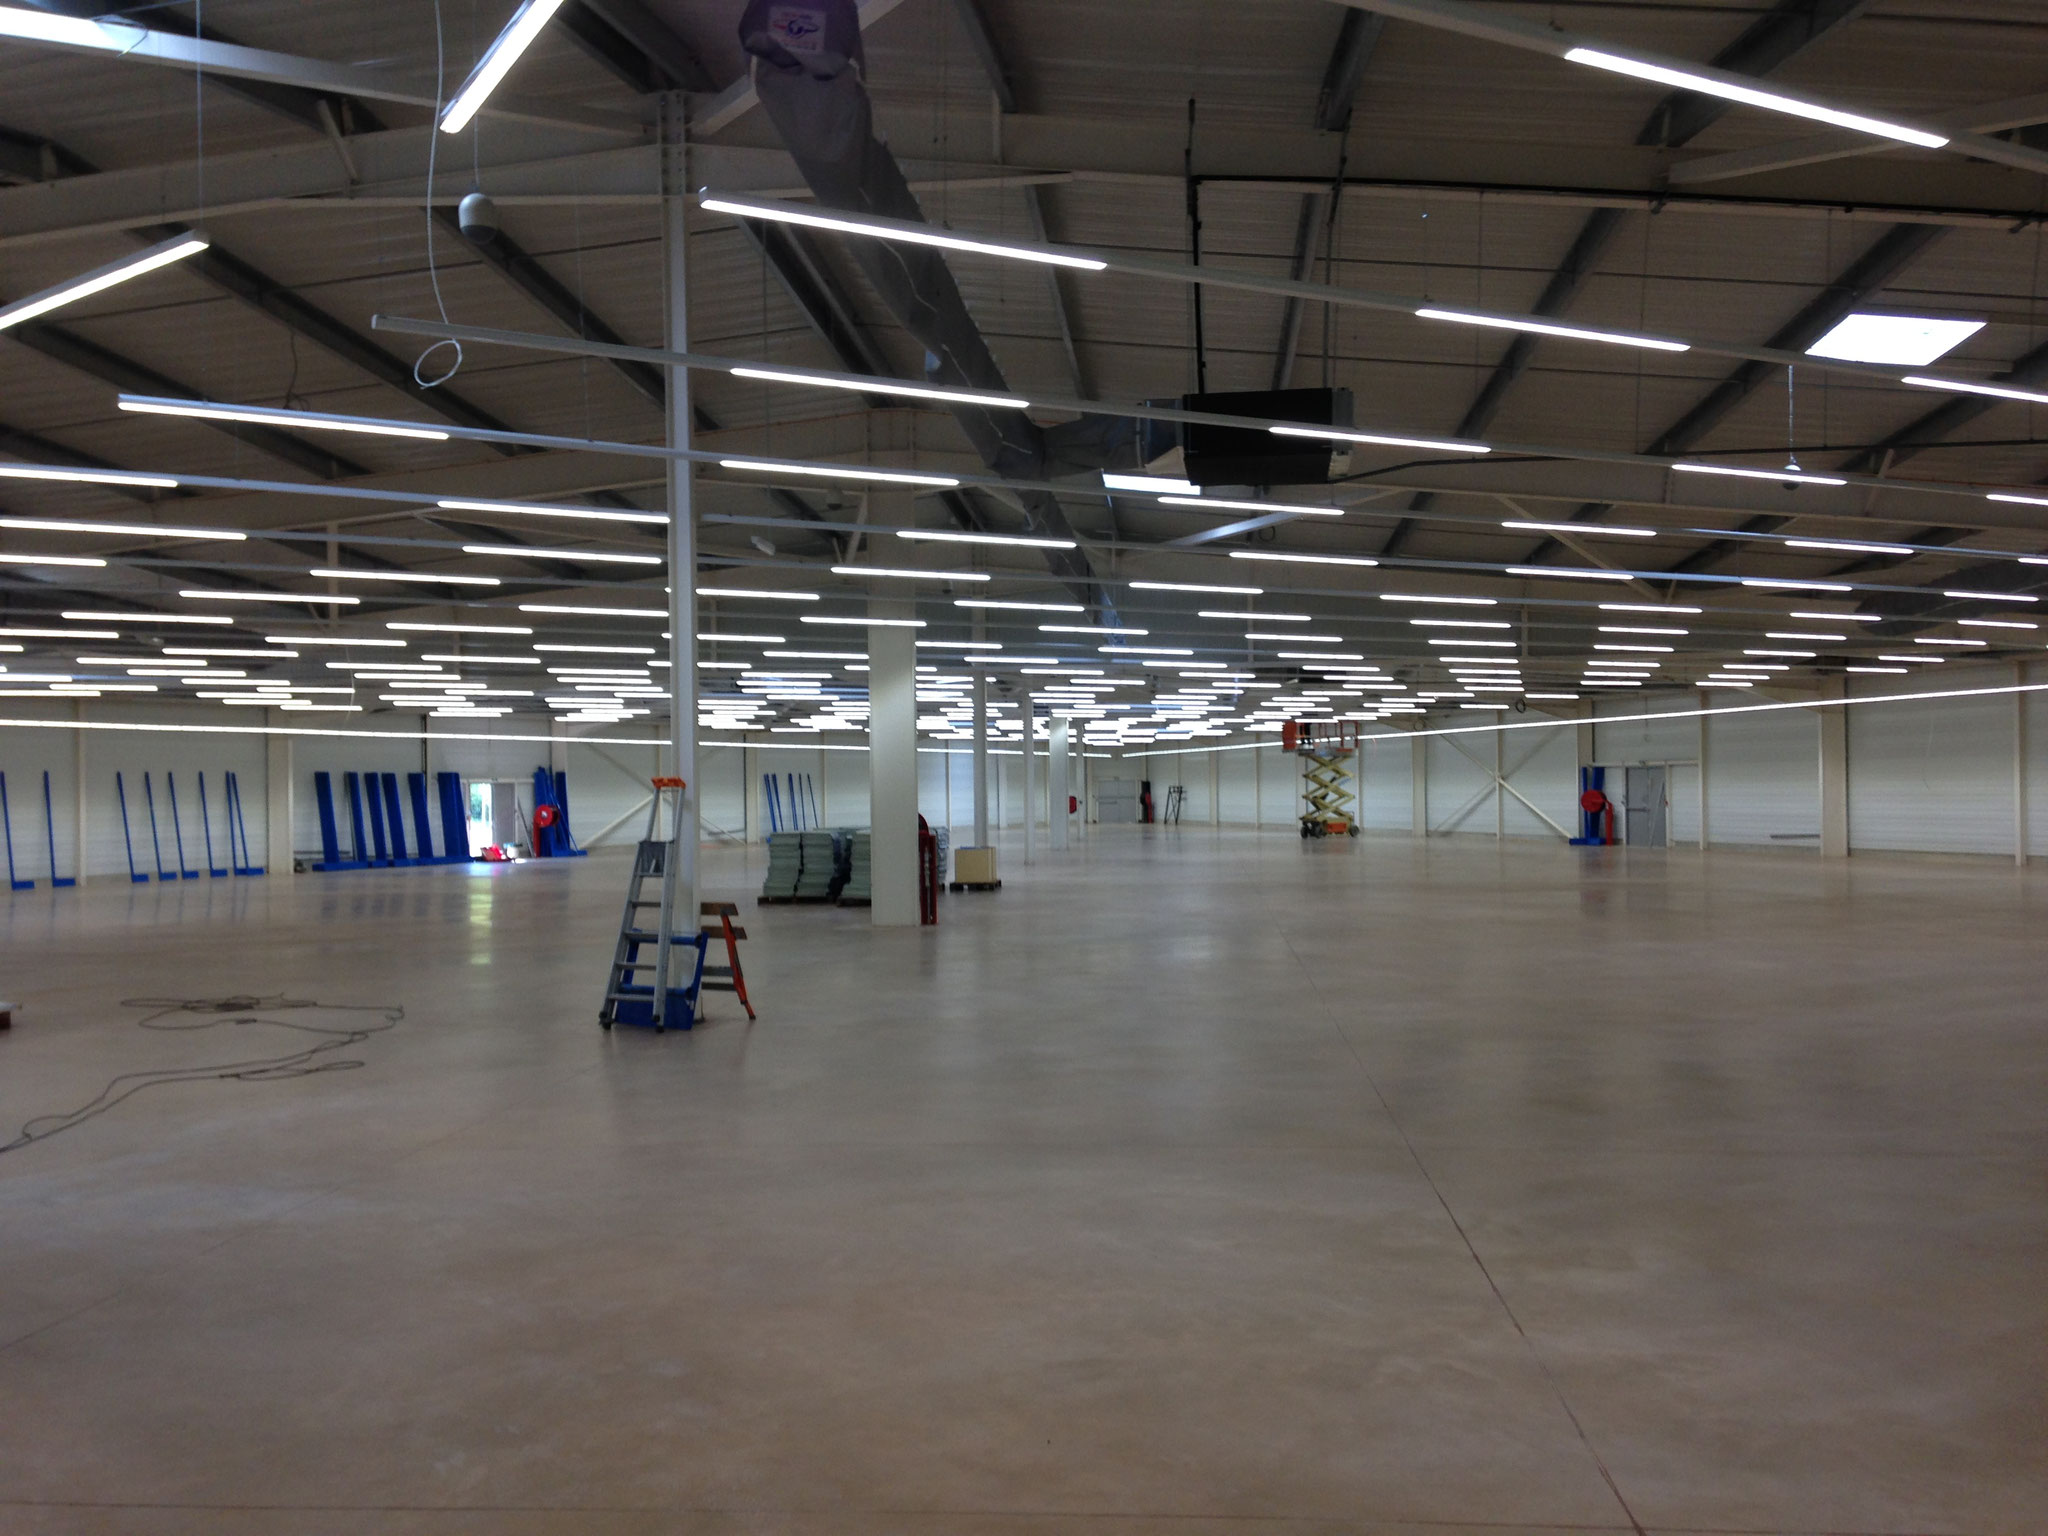 Eclairage LED magasin 3000 m2 TRILUX